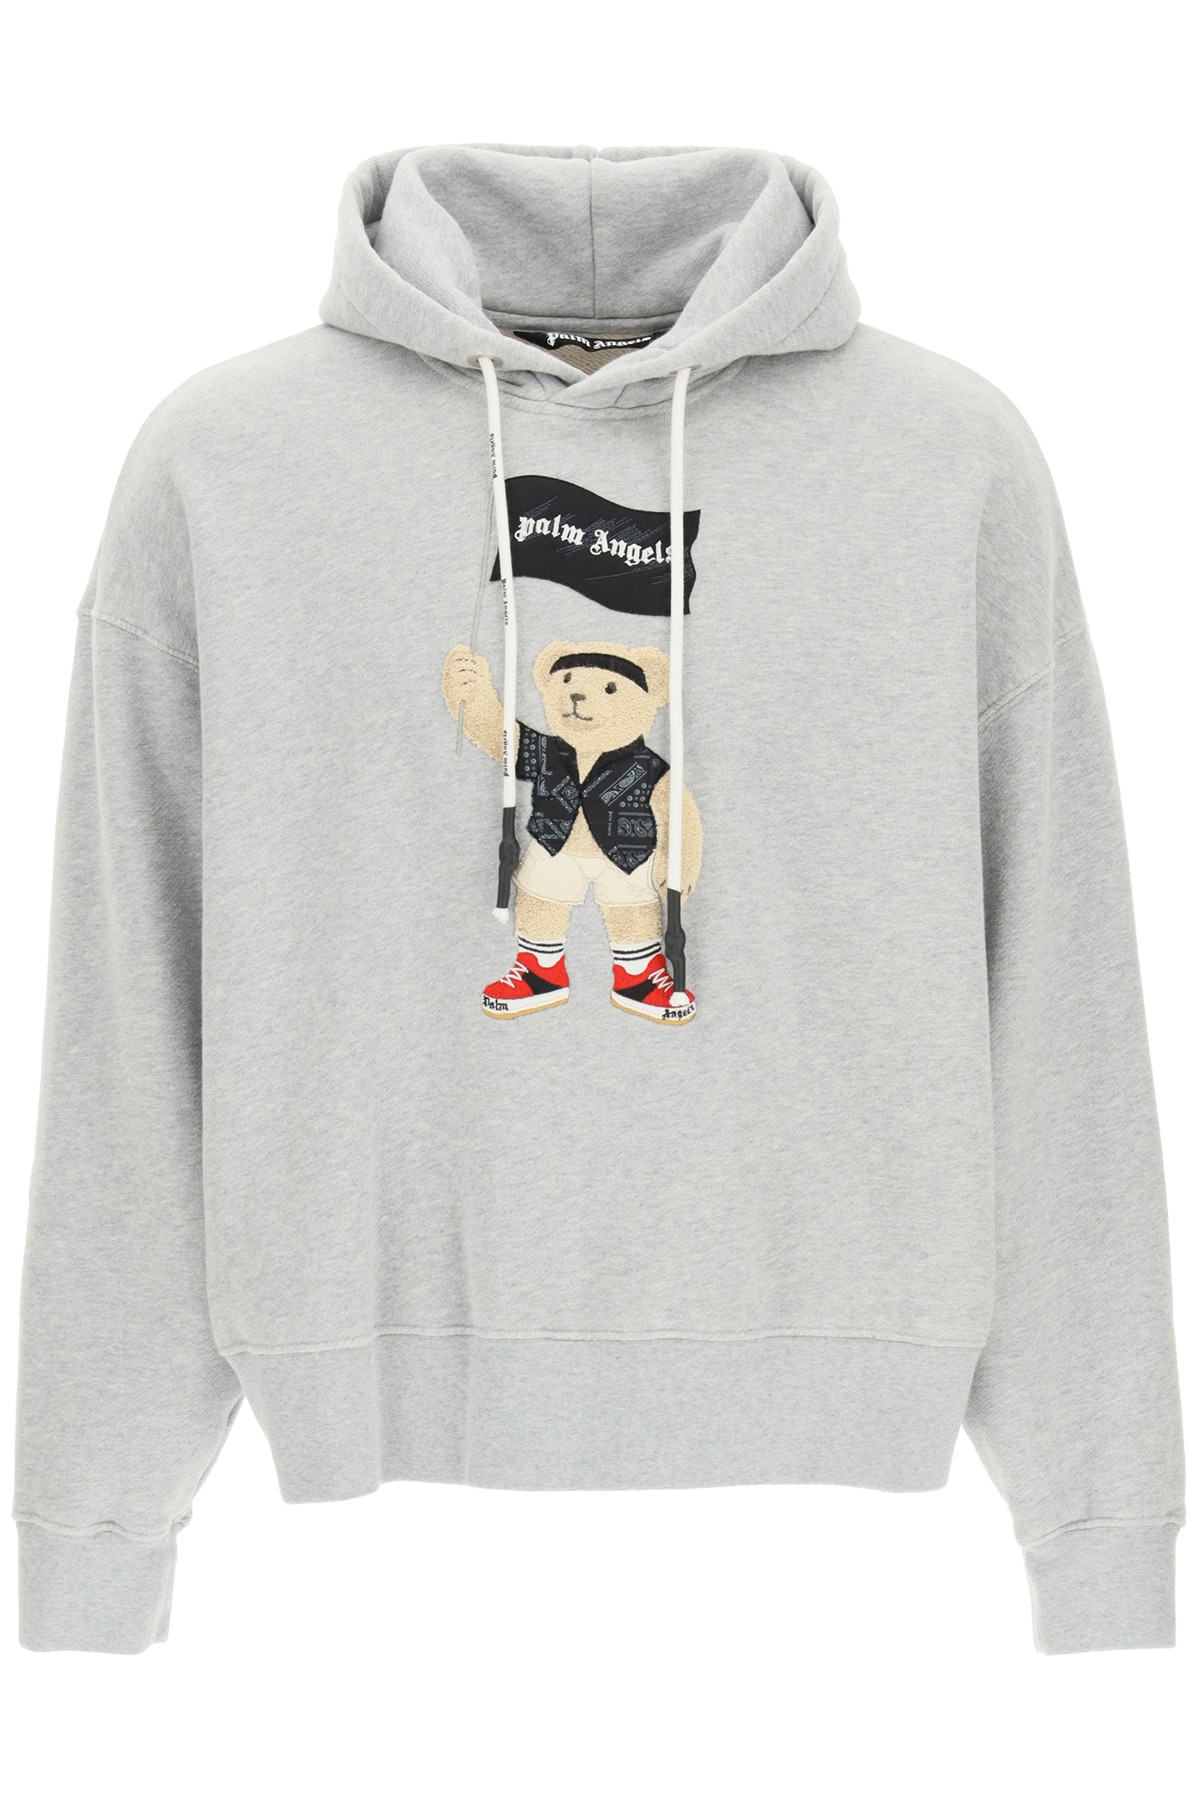 PALM ANGELS PIRATE BEAR PATCH HOODIE L Grey Cotton